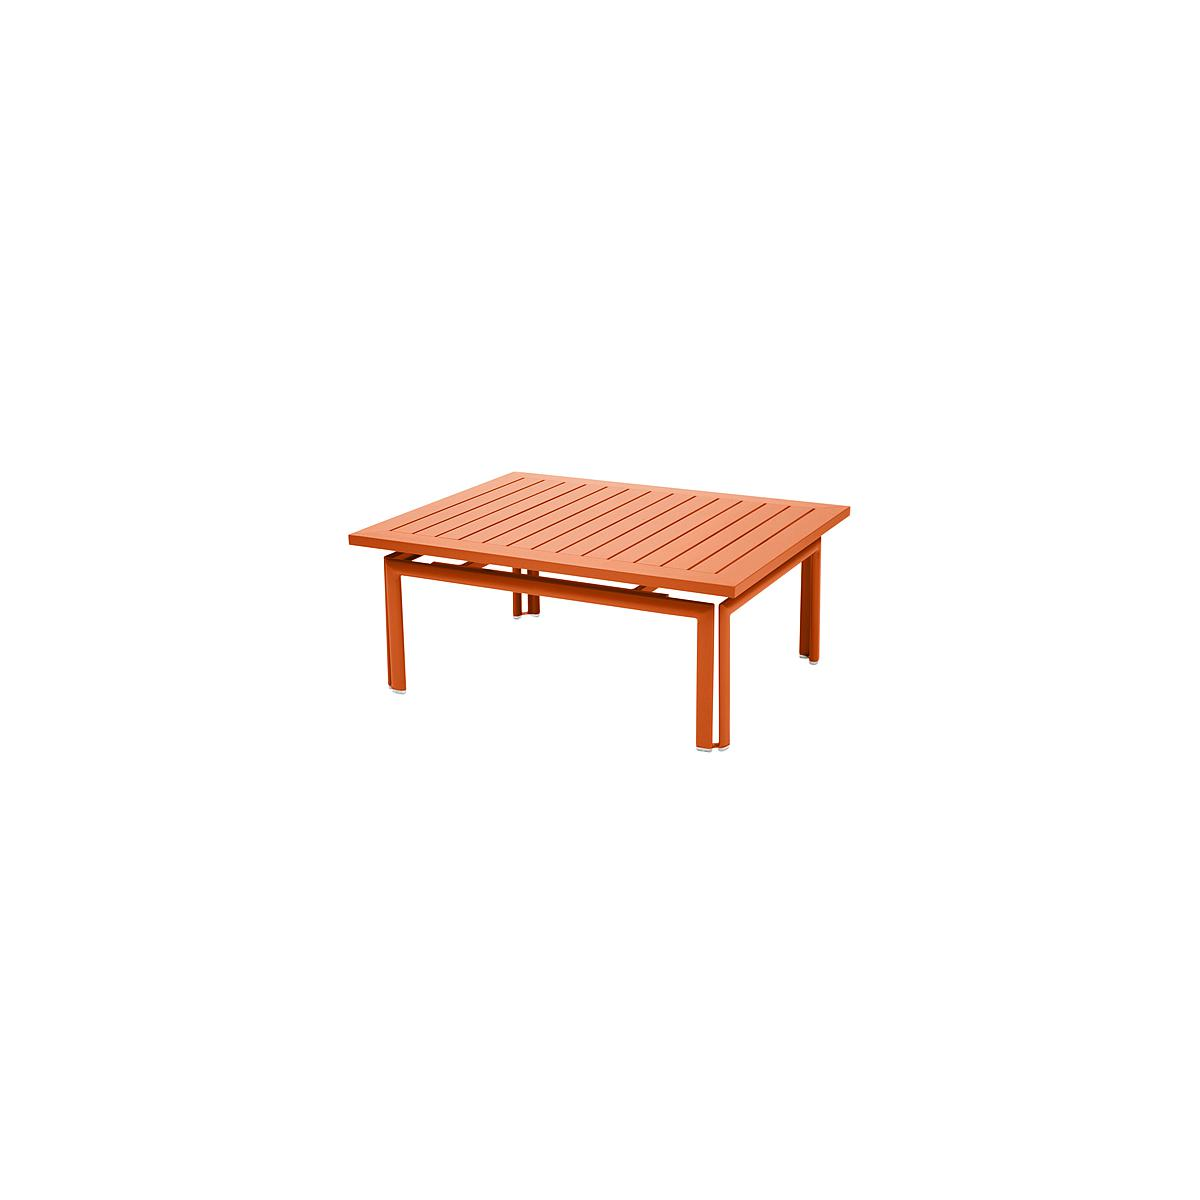 COSTA by Fermob Table basse Orange carotte